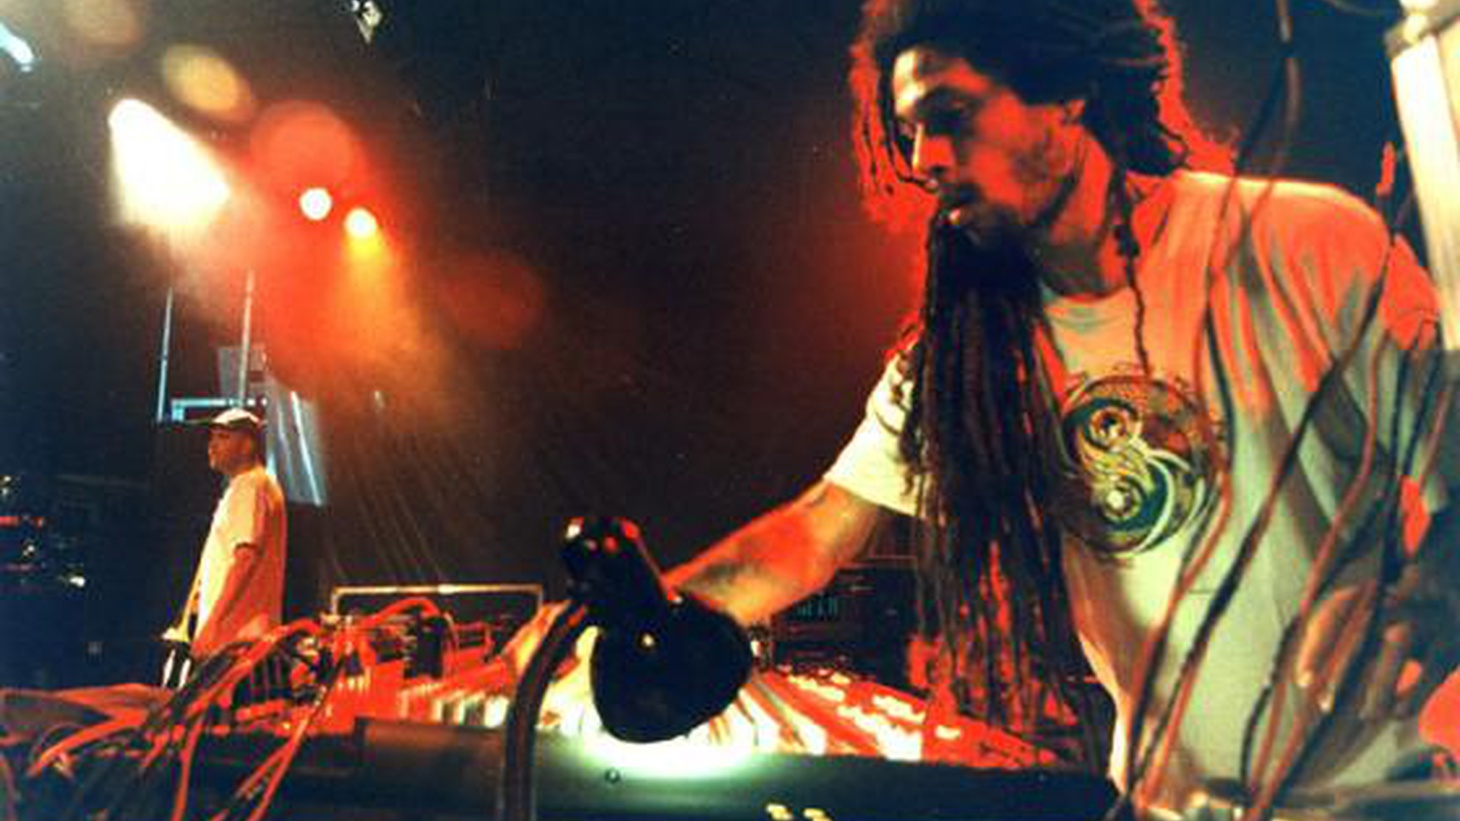 British dub reggae ensemble Zion Train have scored a number of club hits during their 20 years as a band. They were a huge influence on many other artists and we'll experience a rare performance as they make a stop on Morning Becomes Eclectic in the 11 o'clock hour.